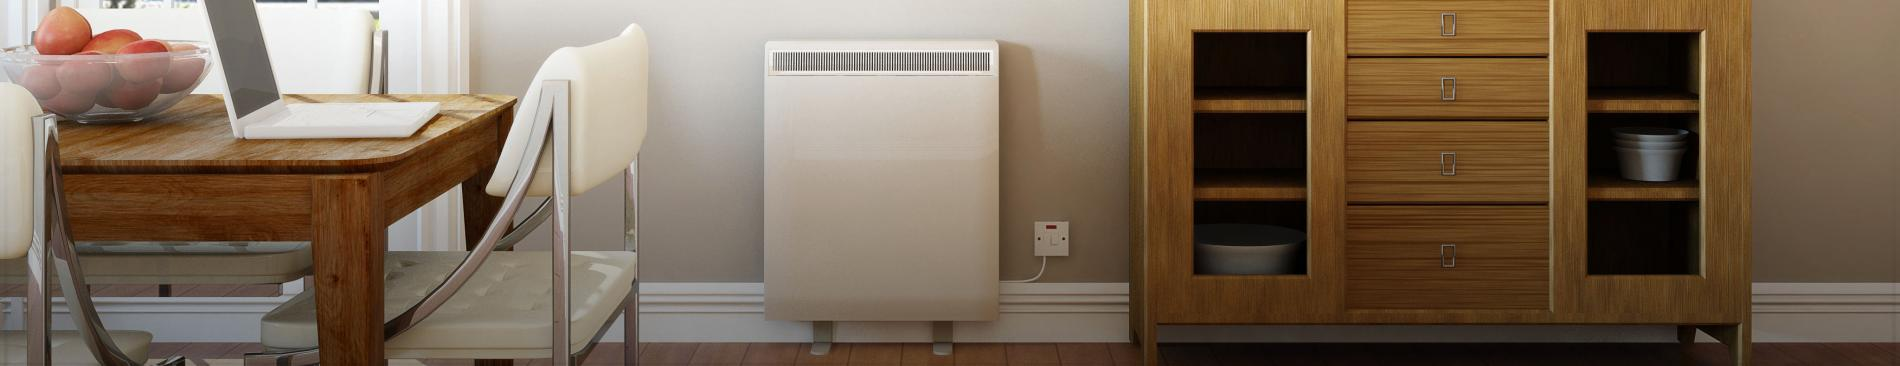 Installed heating